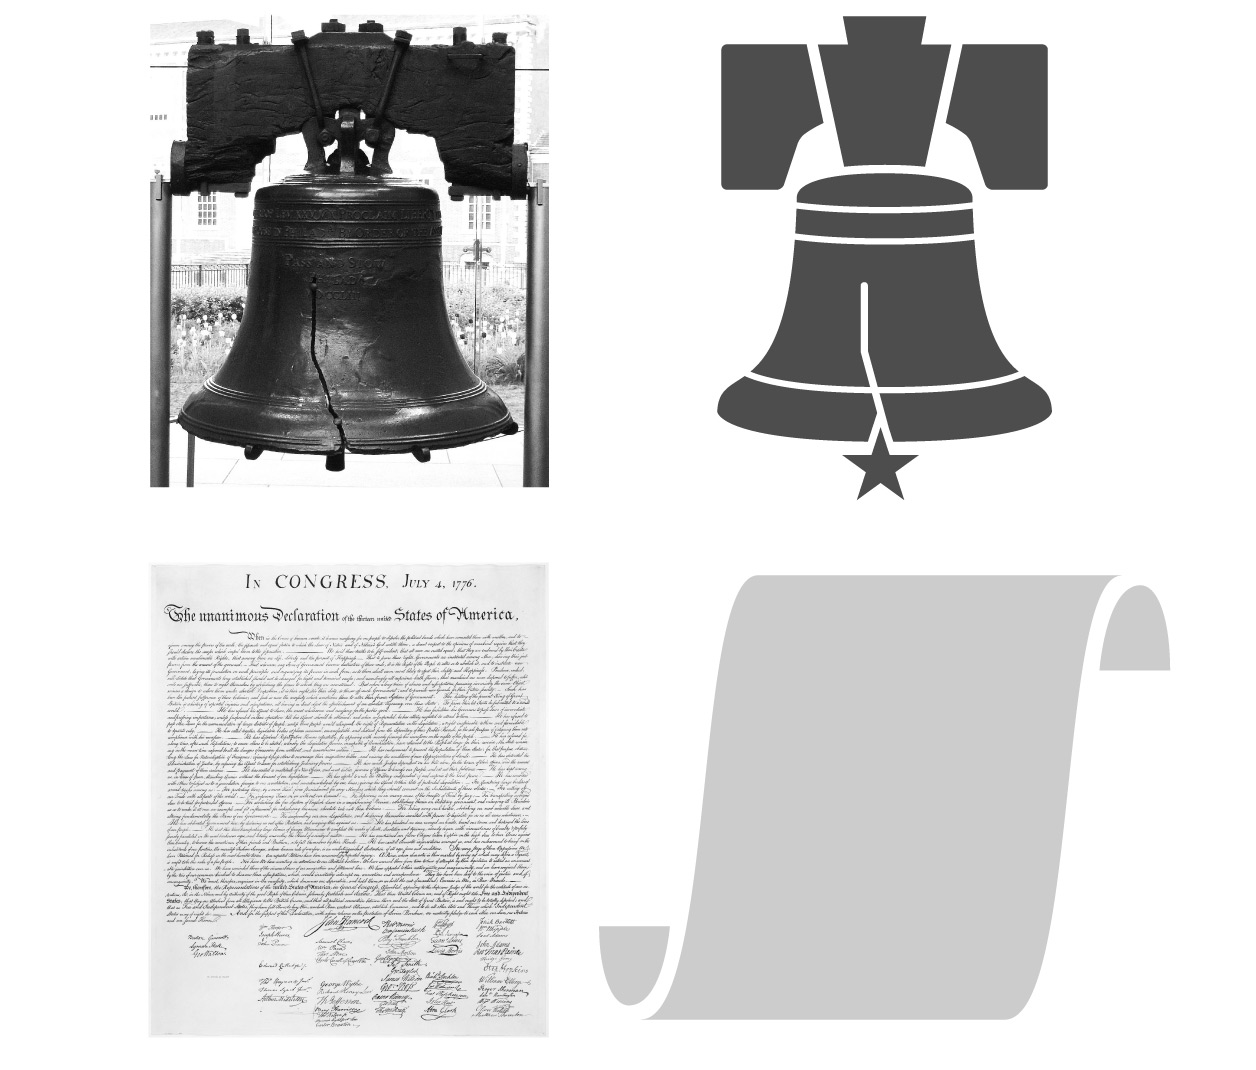 The Liberty Bell and the Declaration of Independence.